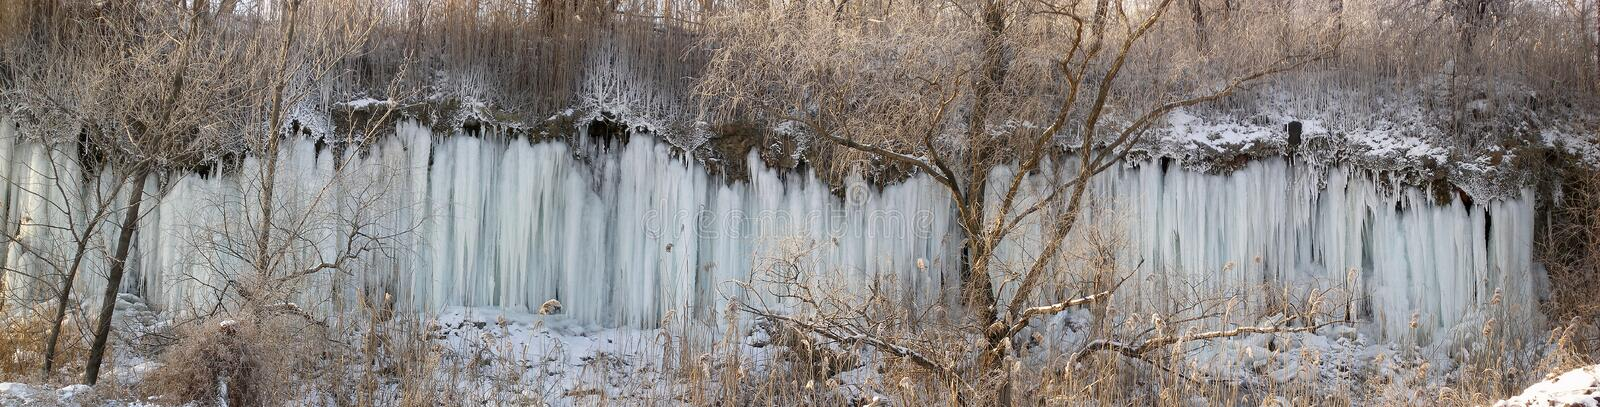 Panorama of the slope of the ravine, along which streamlets of water ran and froze in the frost, forming an icy wall of icicles re stock photo